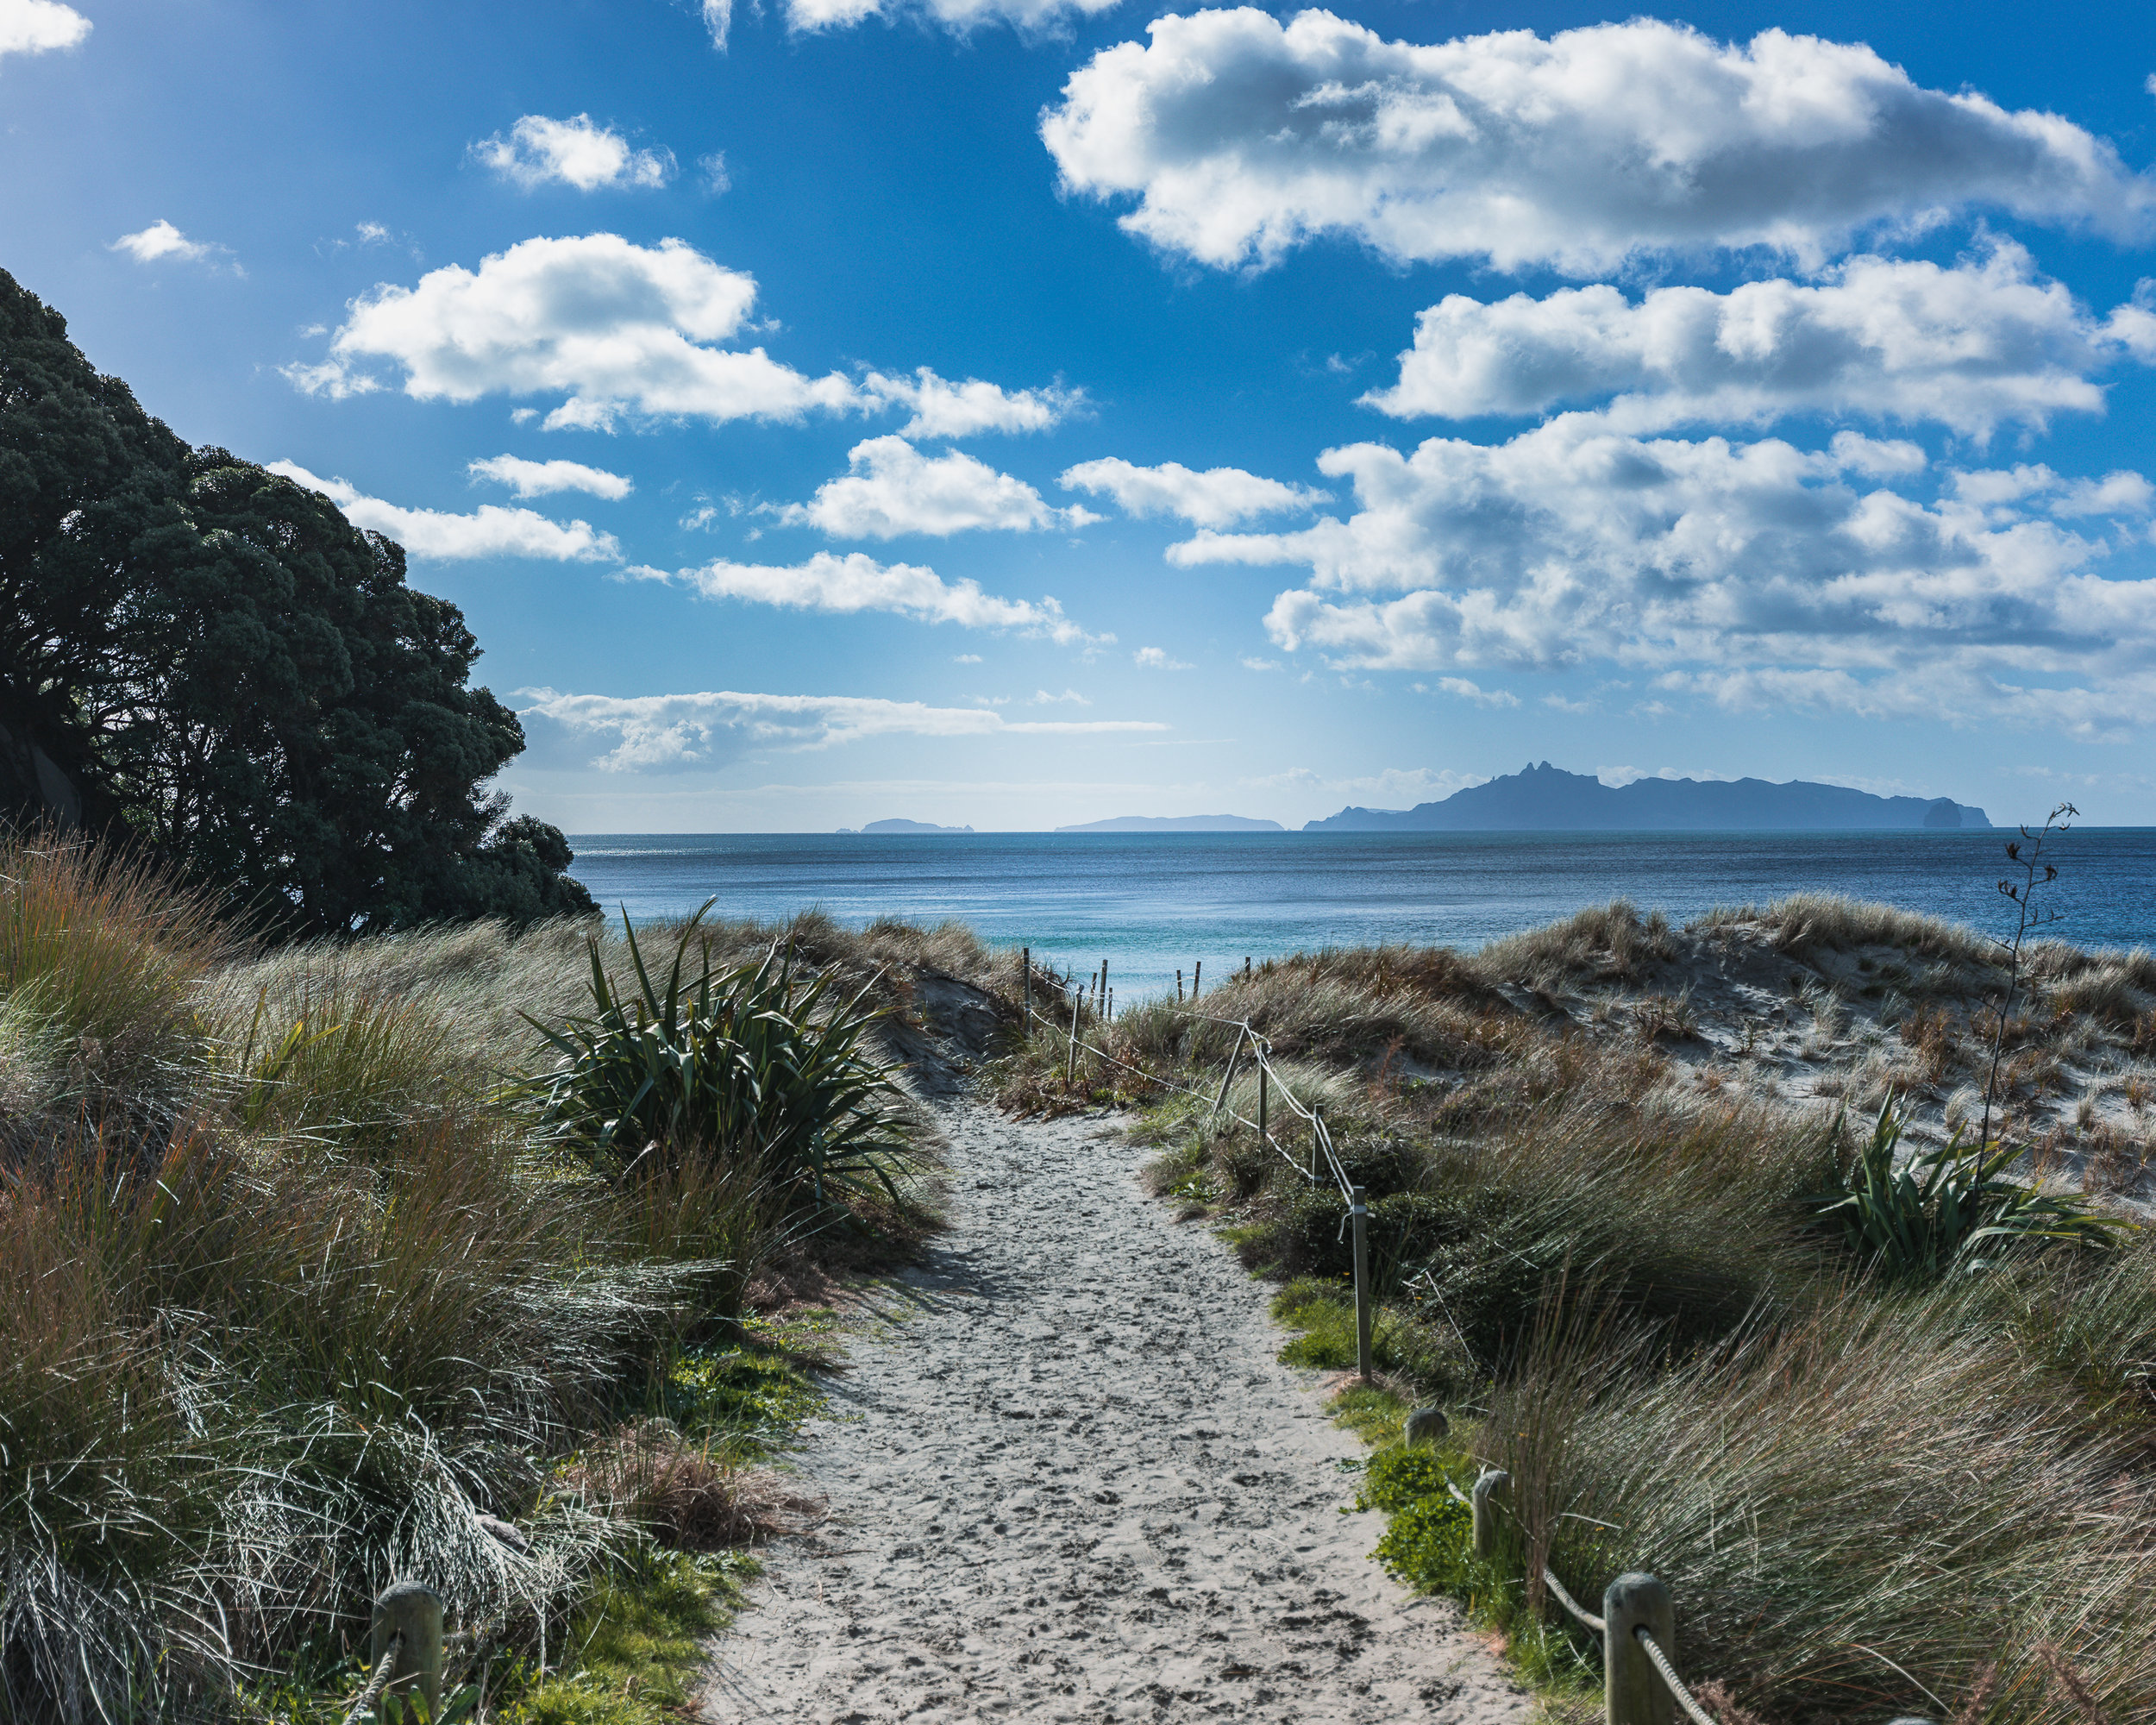 BEACHES TO CHECK OUT IN THE NORTH ISLAND OF NEW ZEALAND